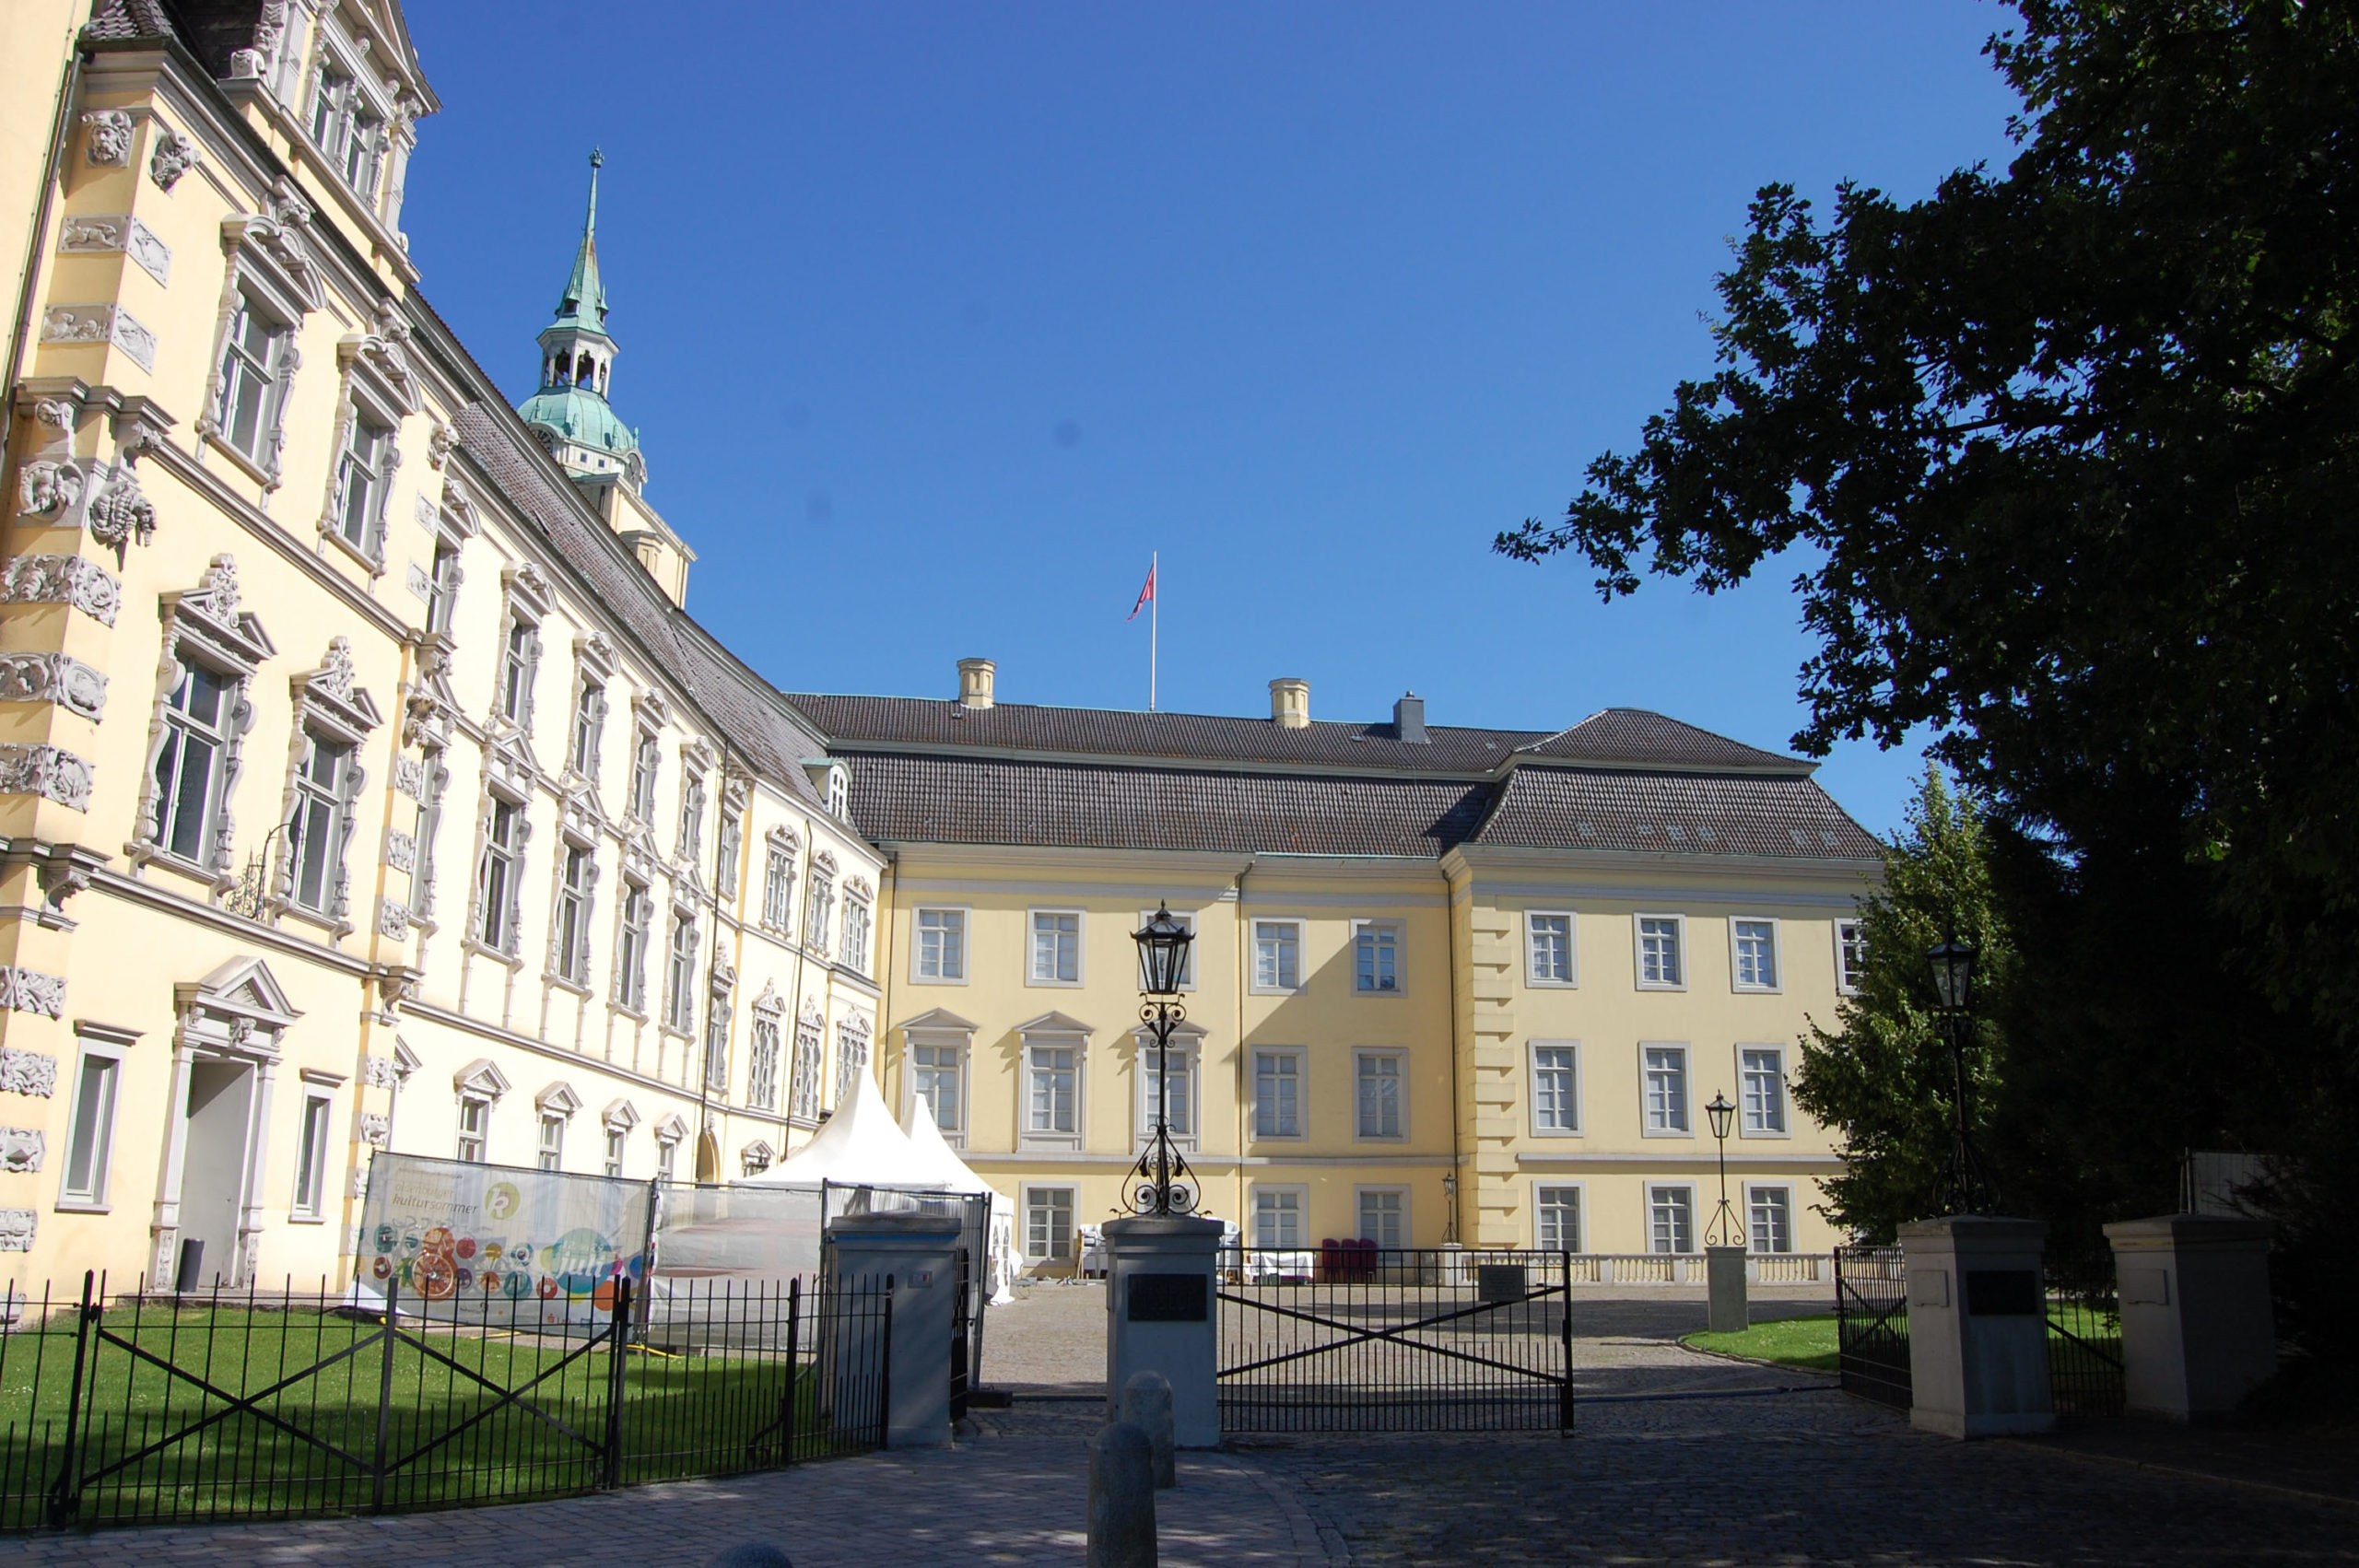 Innenhof Oldenburger Schloss